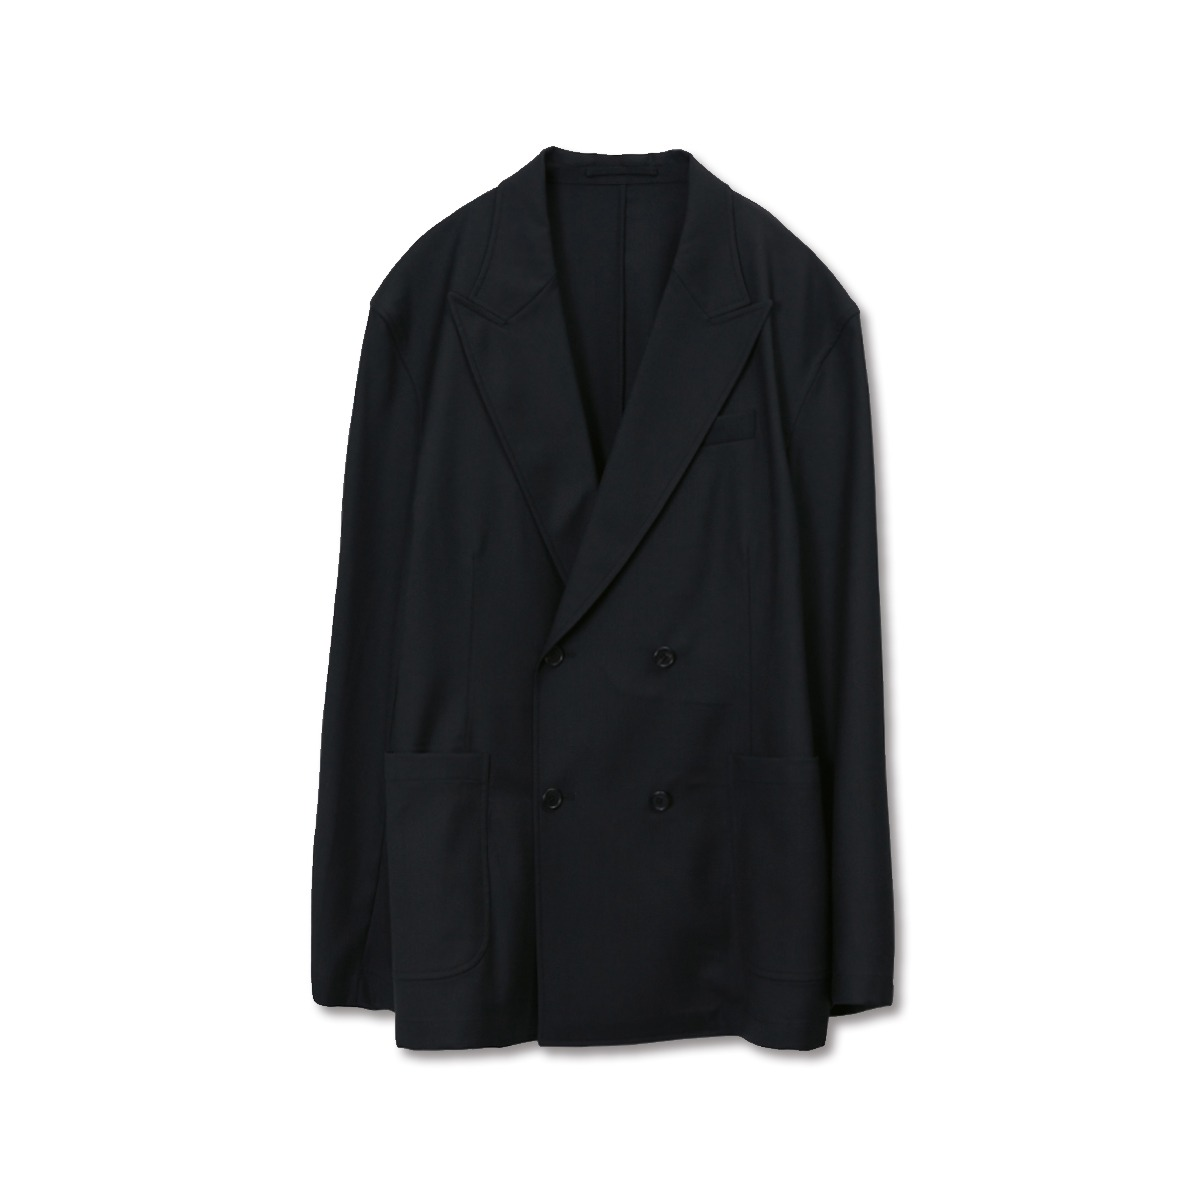 [BROWNYARD] DOUBLE BREASTED JACKET 'BLACK'